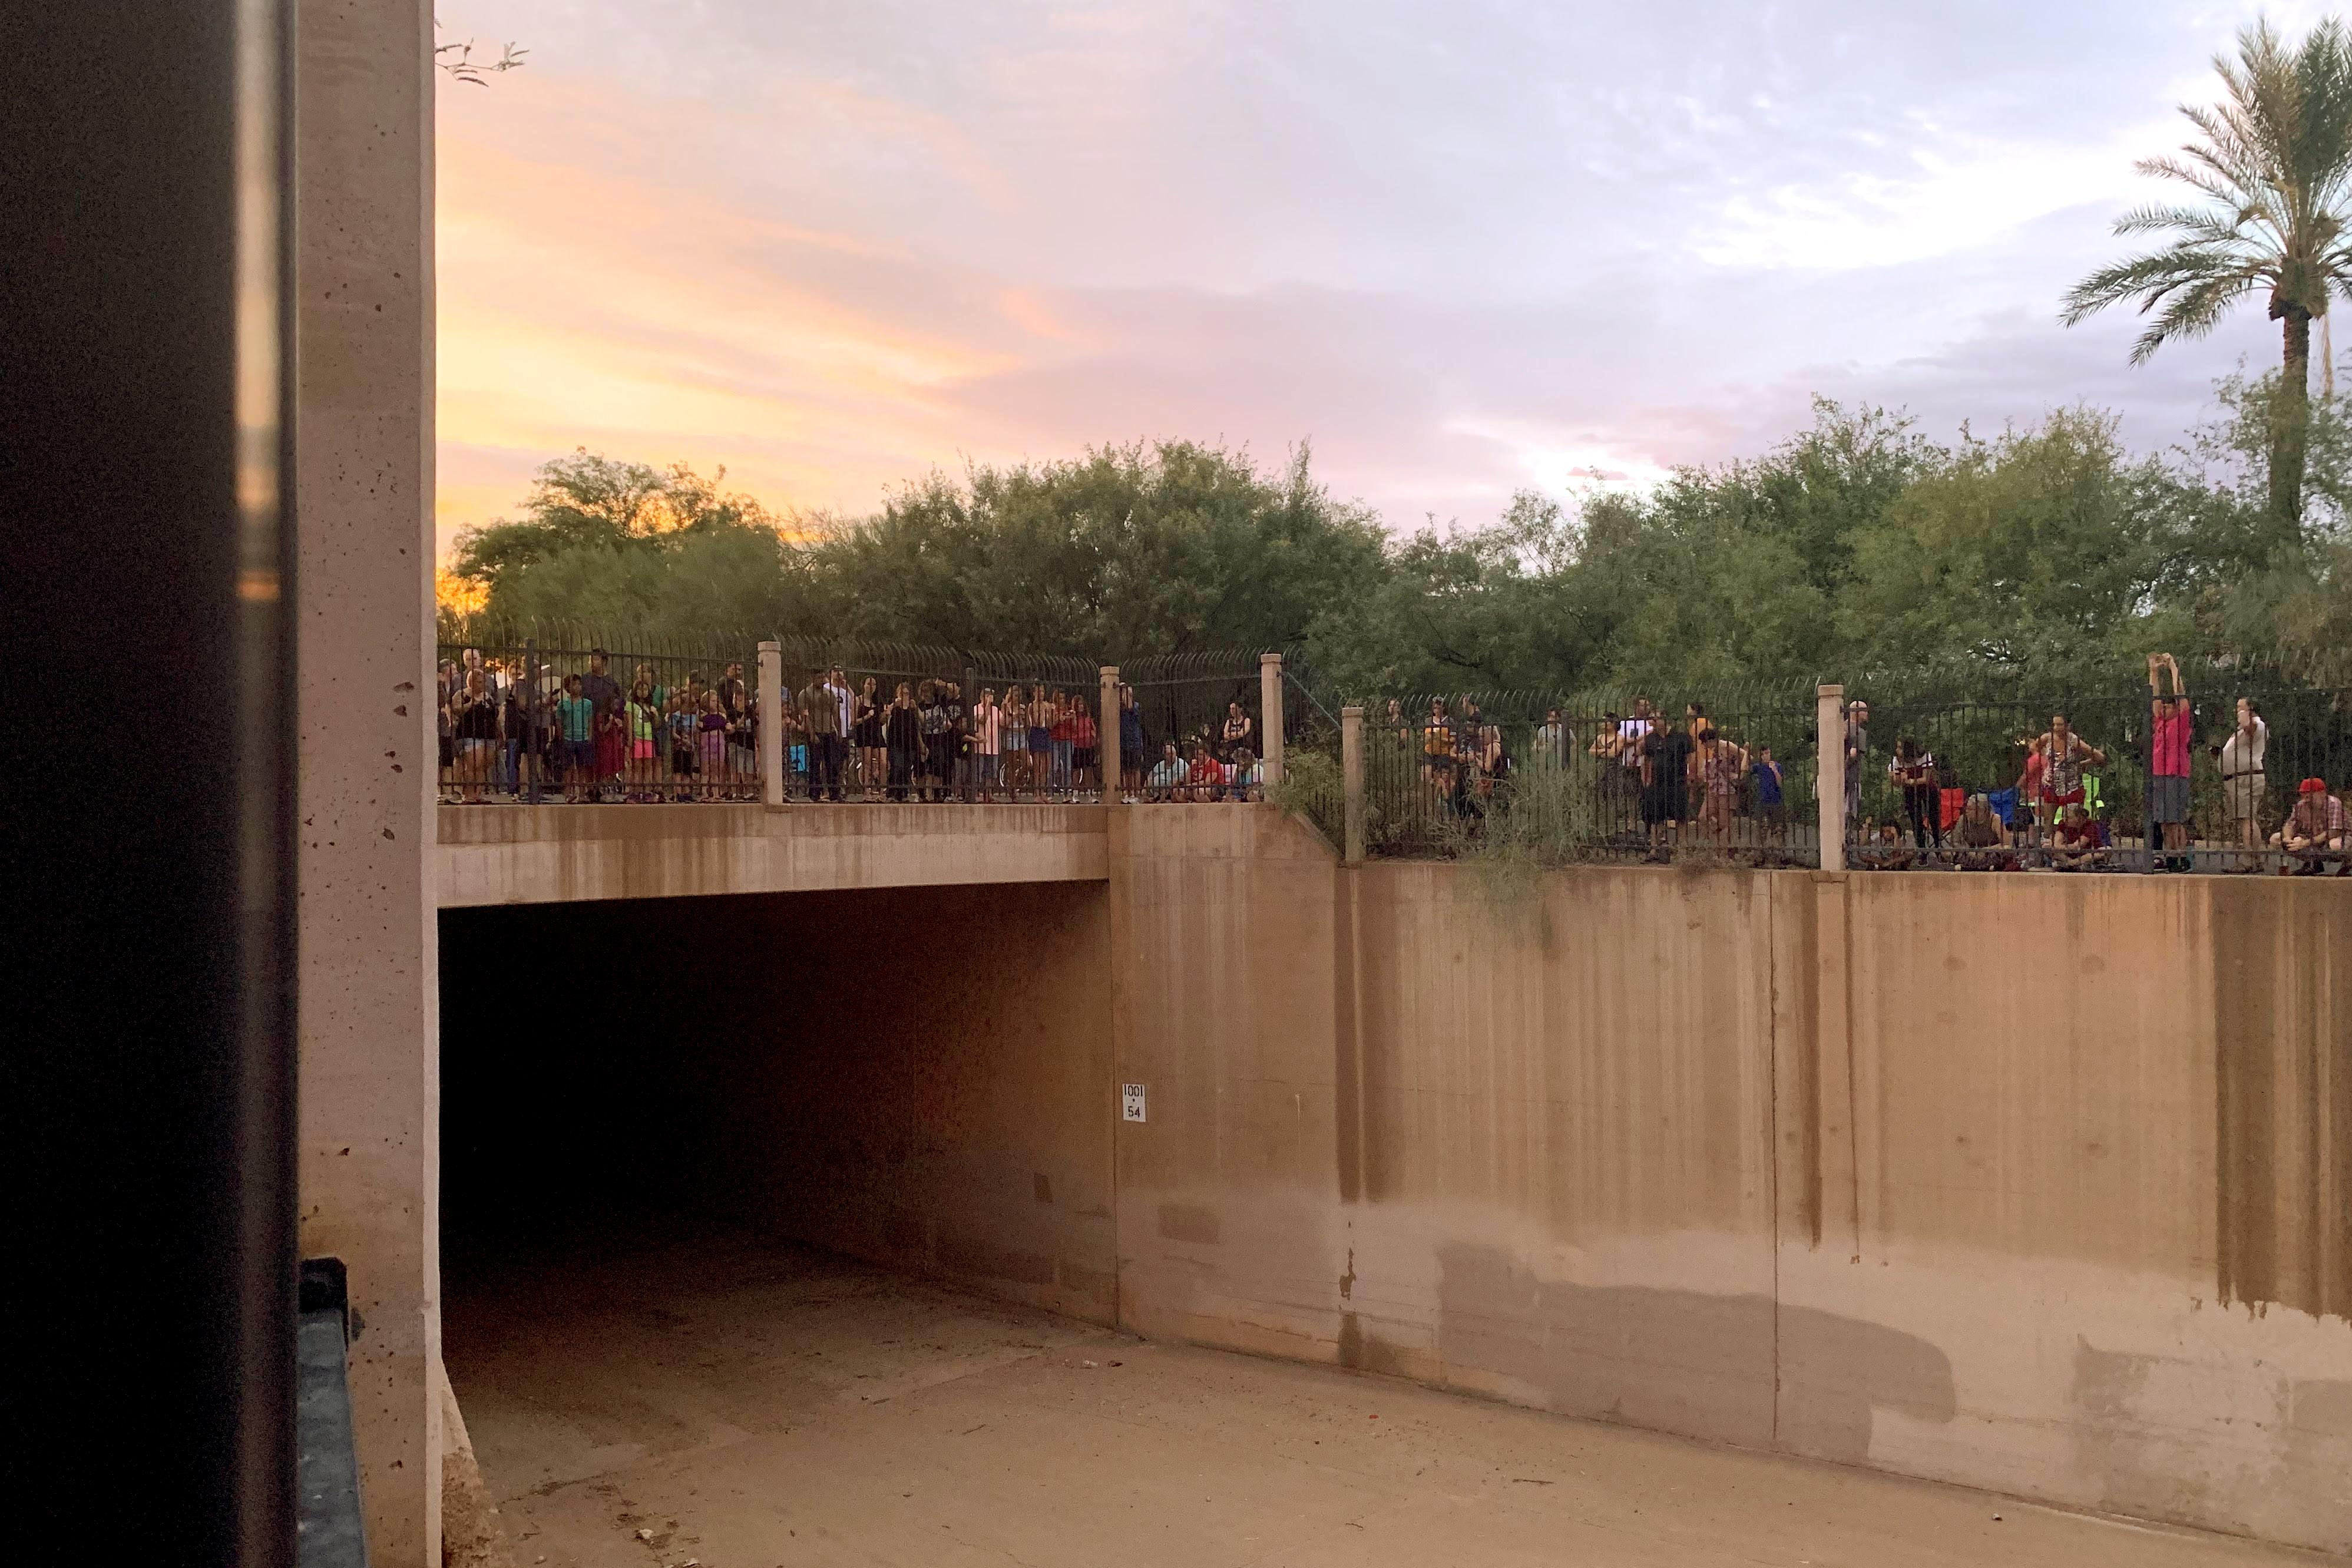 crowd waiting for bats to appear